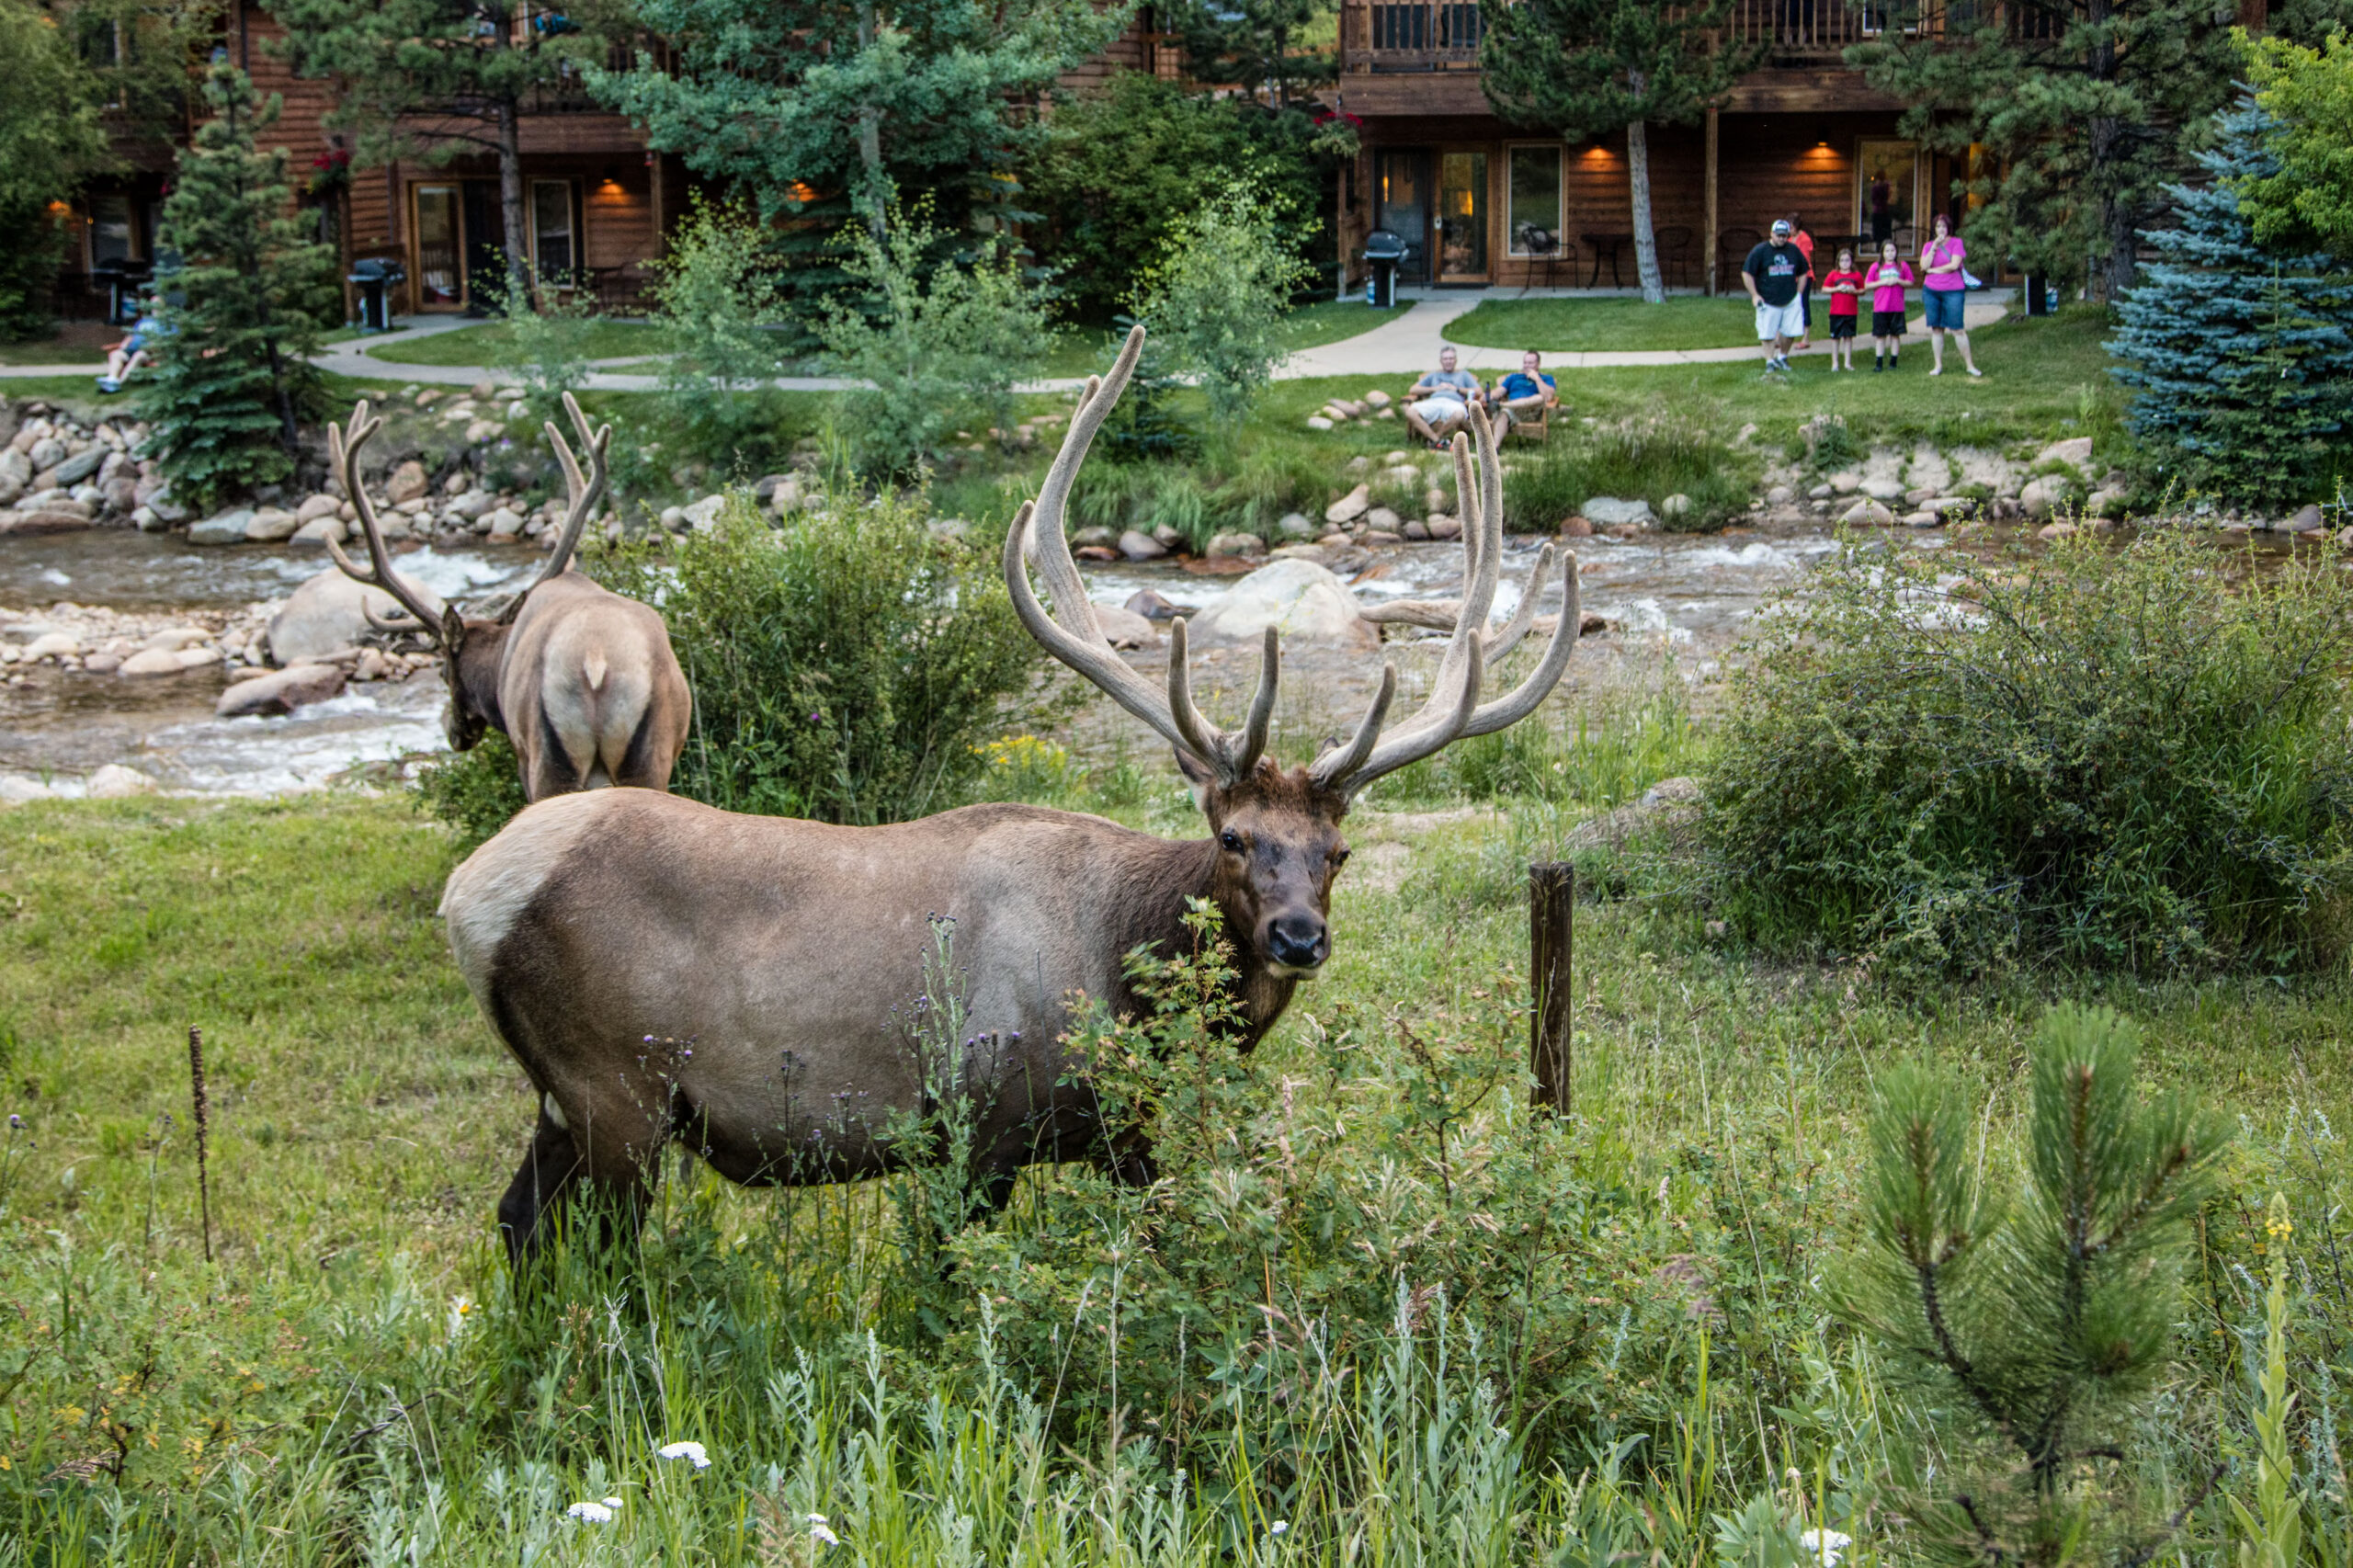 Elk make themselves at home in the brush at the Woodlands at Fall River Suites mountain resort in Estes Park, a town on the eastern edge of Rocky Mountain National Park.